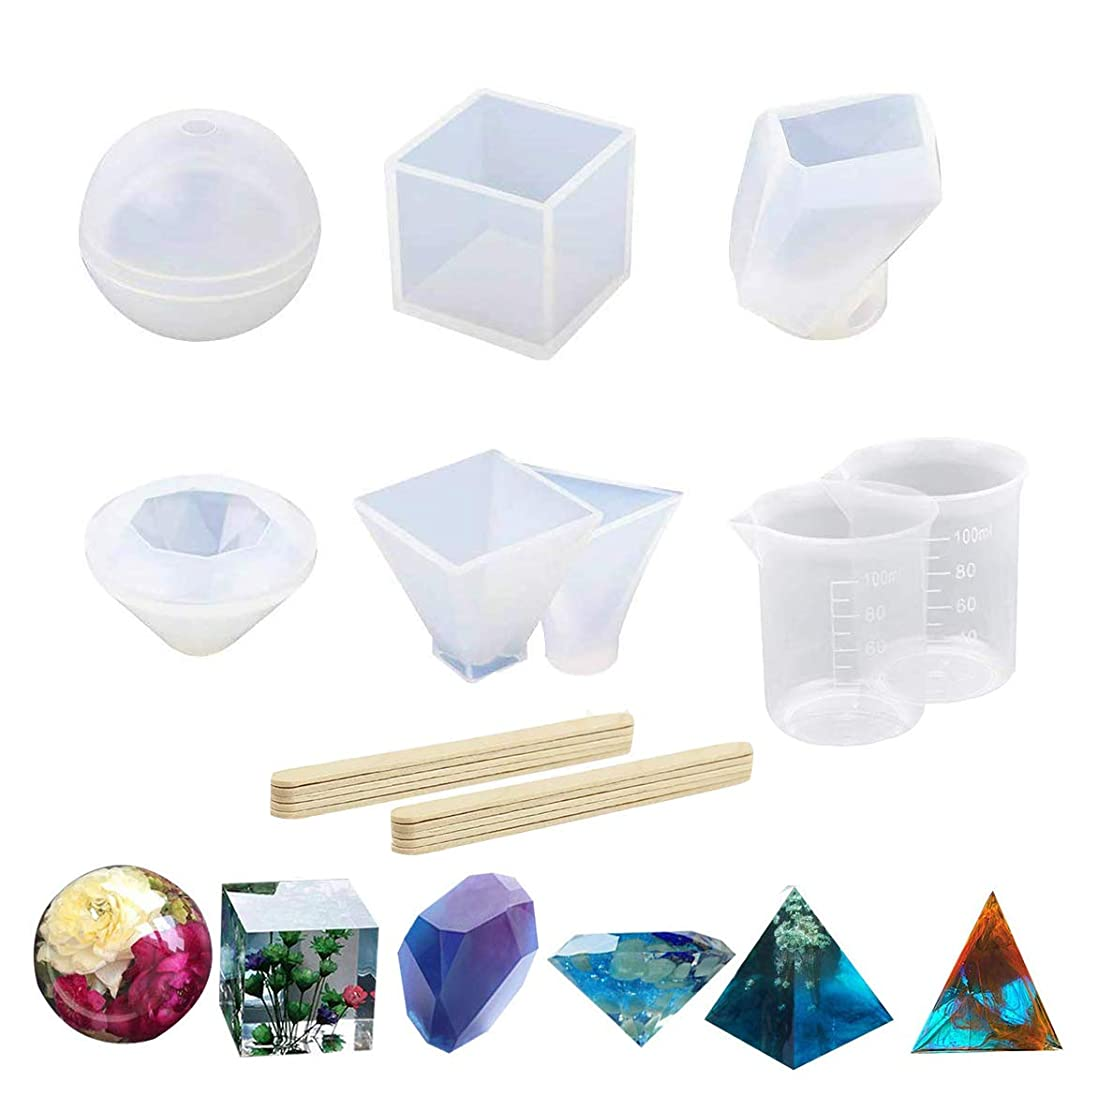 6 Pack Resin Casting Molds Large Clear DIY Silicone Resin Jewelry Craft Molds,Sphere|Cube|Diamond|Pyramid|Triangular Pyramid|Stone Shape Molds for Polymer Clay,Jewelry Making,with Mixing Cups&Sticks